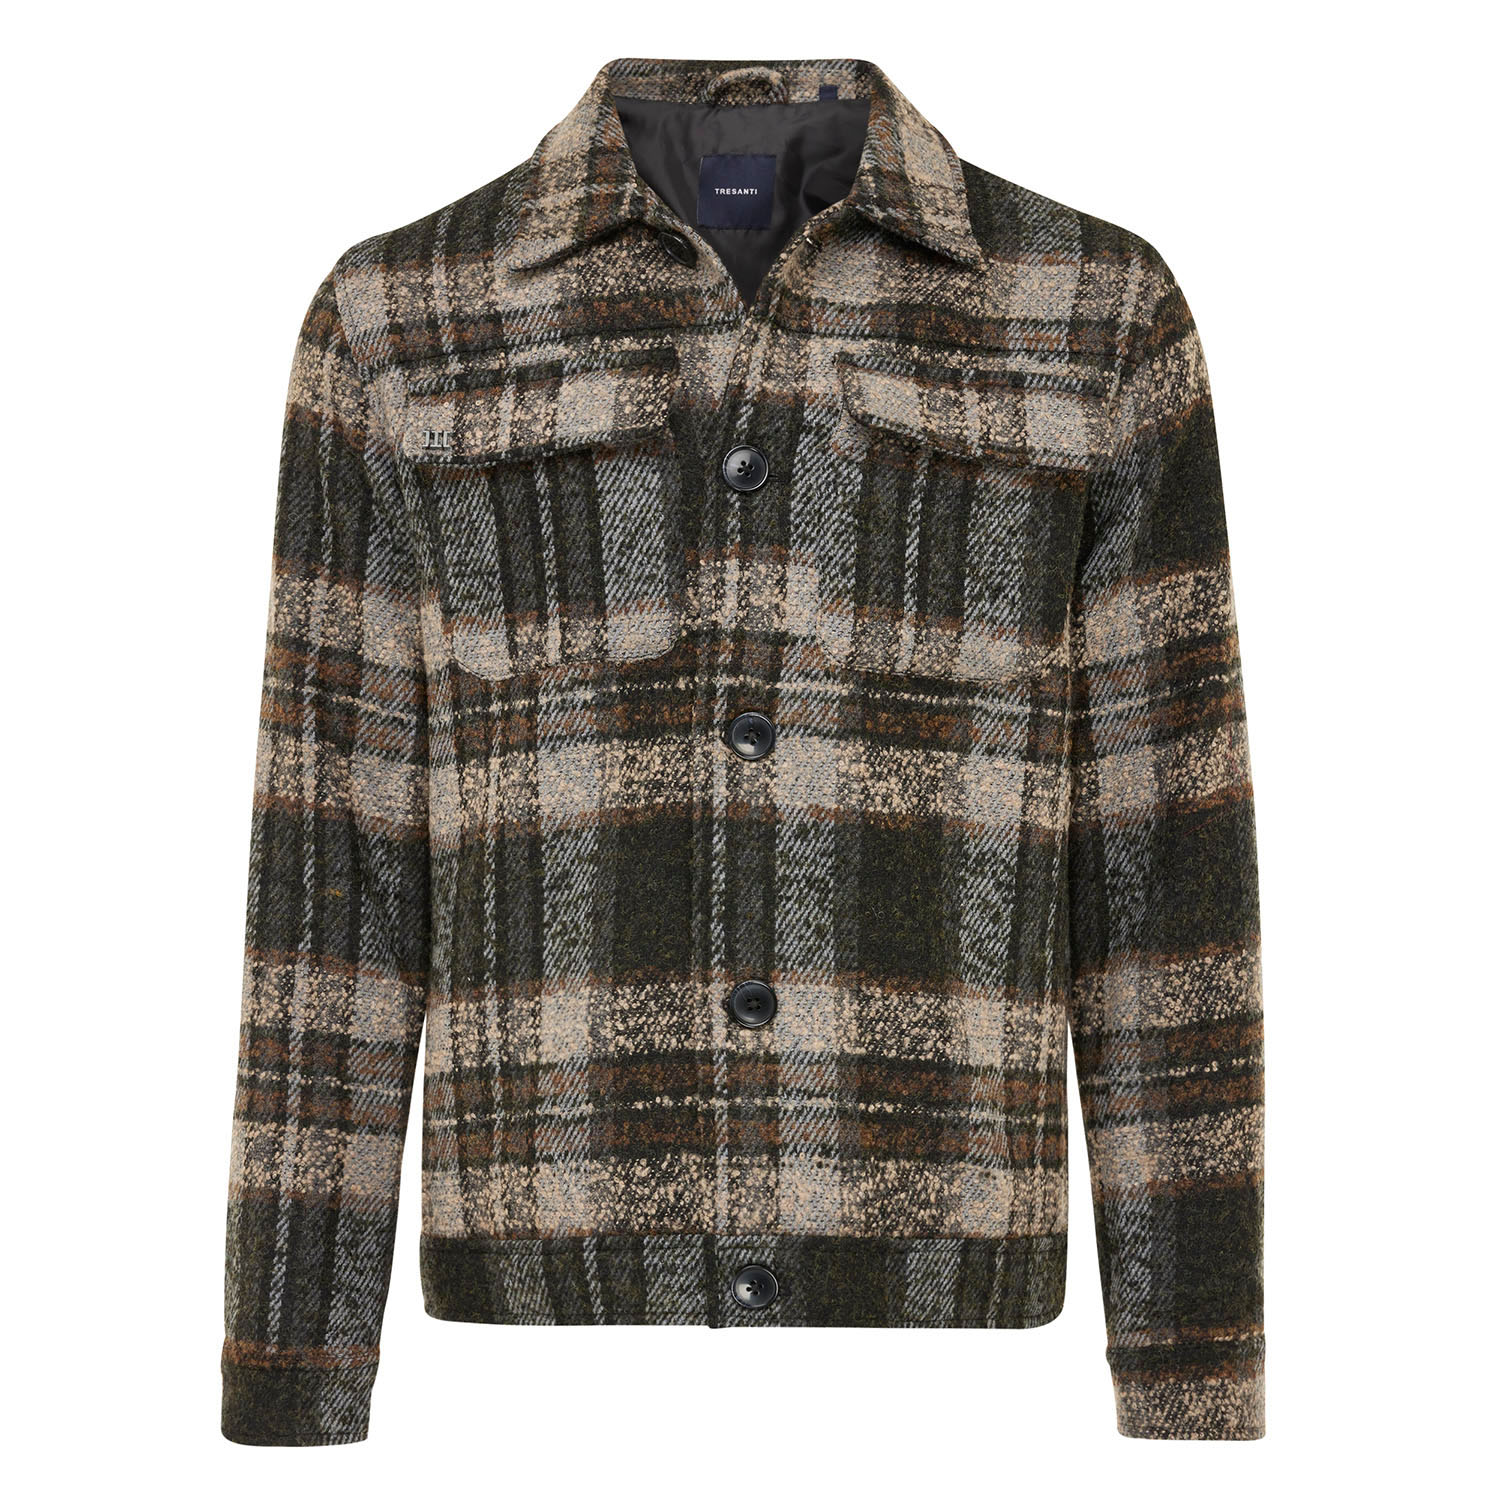 EDISON | Lined jacket with check pattern grey